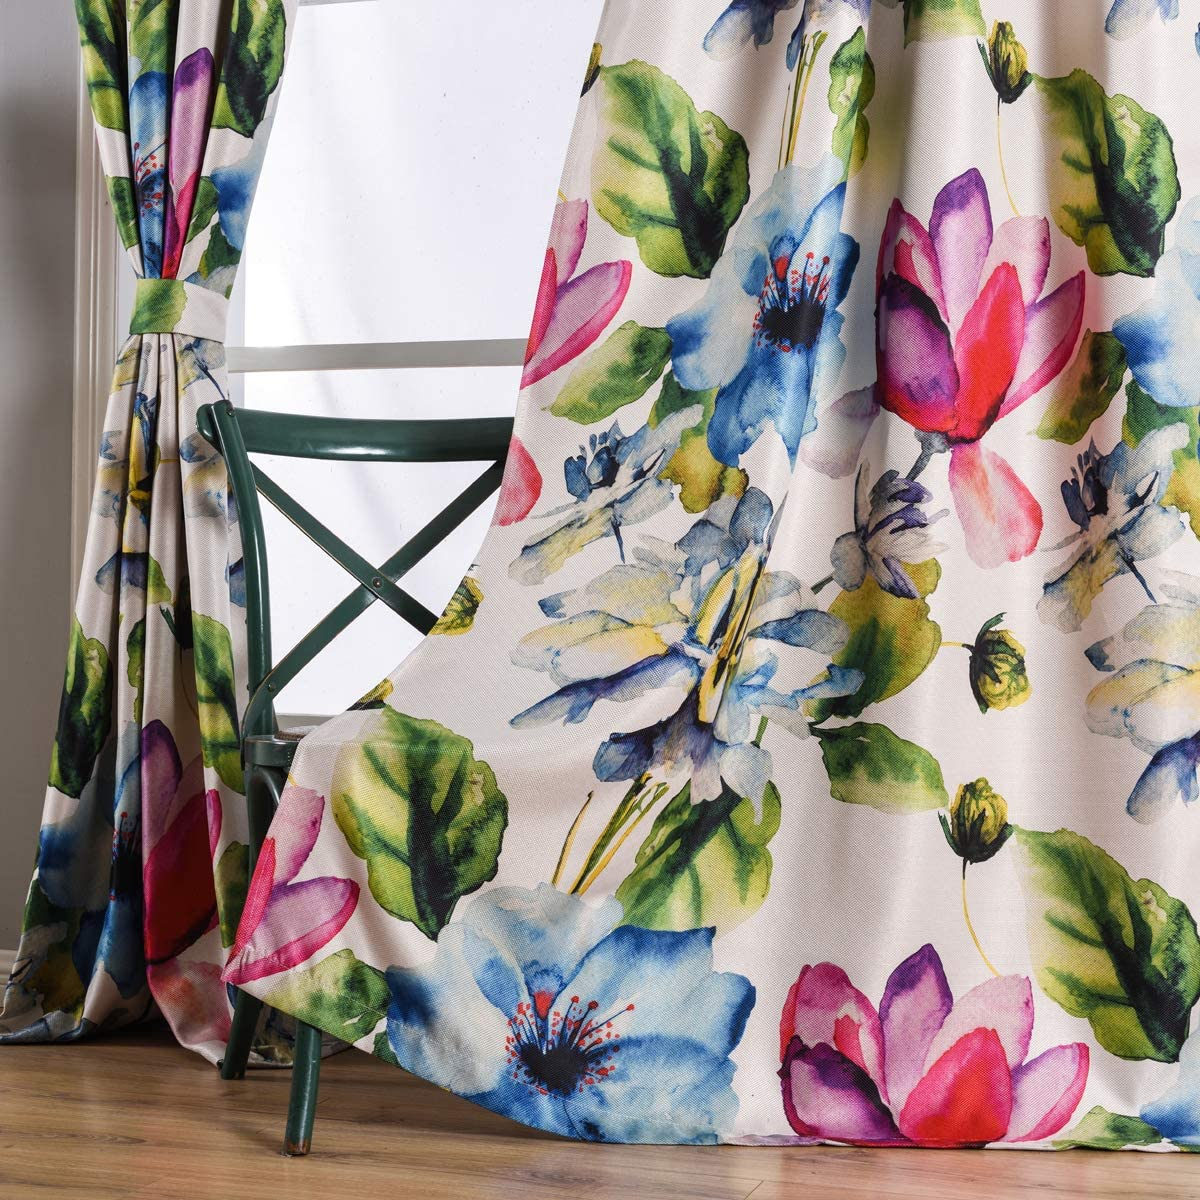 Taisier Home Stylish Living Elegant Abstract Colorful Curtains Printed,Colorful Flower Curtain Printed,Fashion Curtain 84 Inch Lenth for Bedroom(Floral Print Curtain 1 Piece Set)